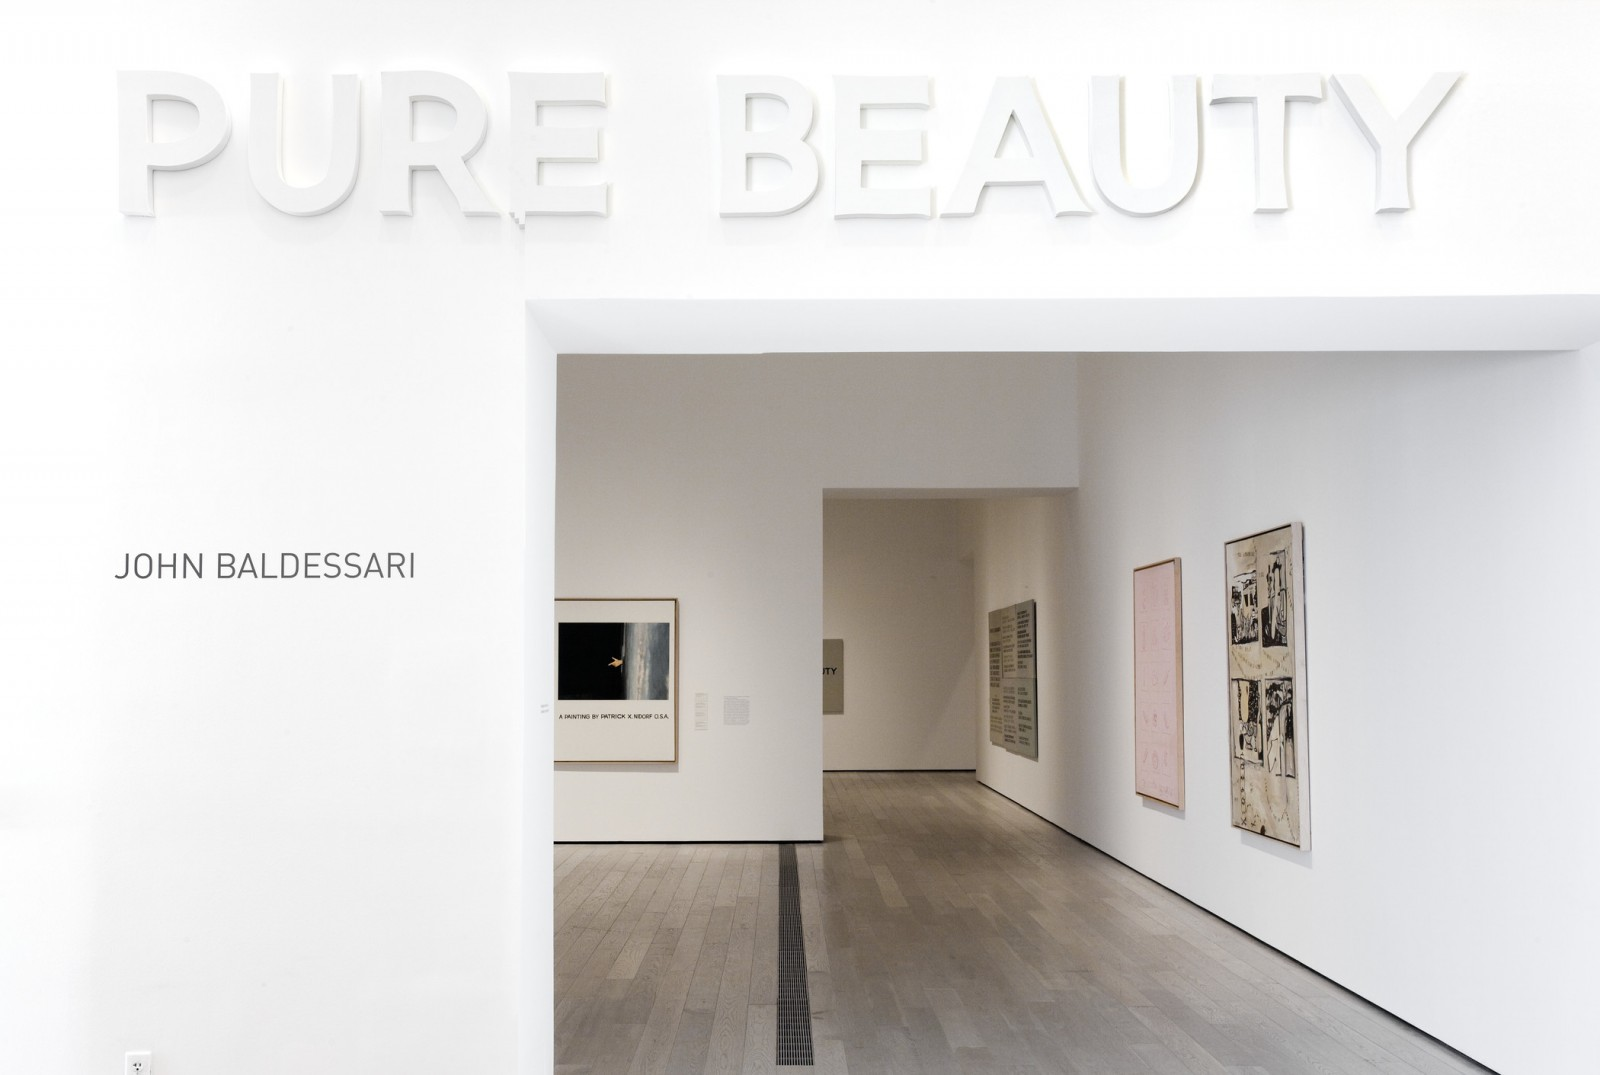 Installation photograph, John Baldessari: Pure Beauty, Los Angeles County Museum of Art, June 27 - September 12, 2010